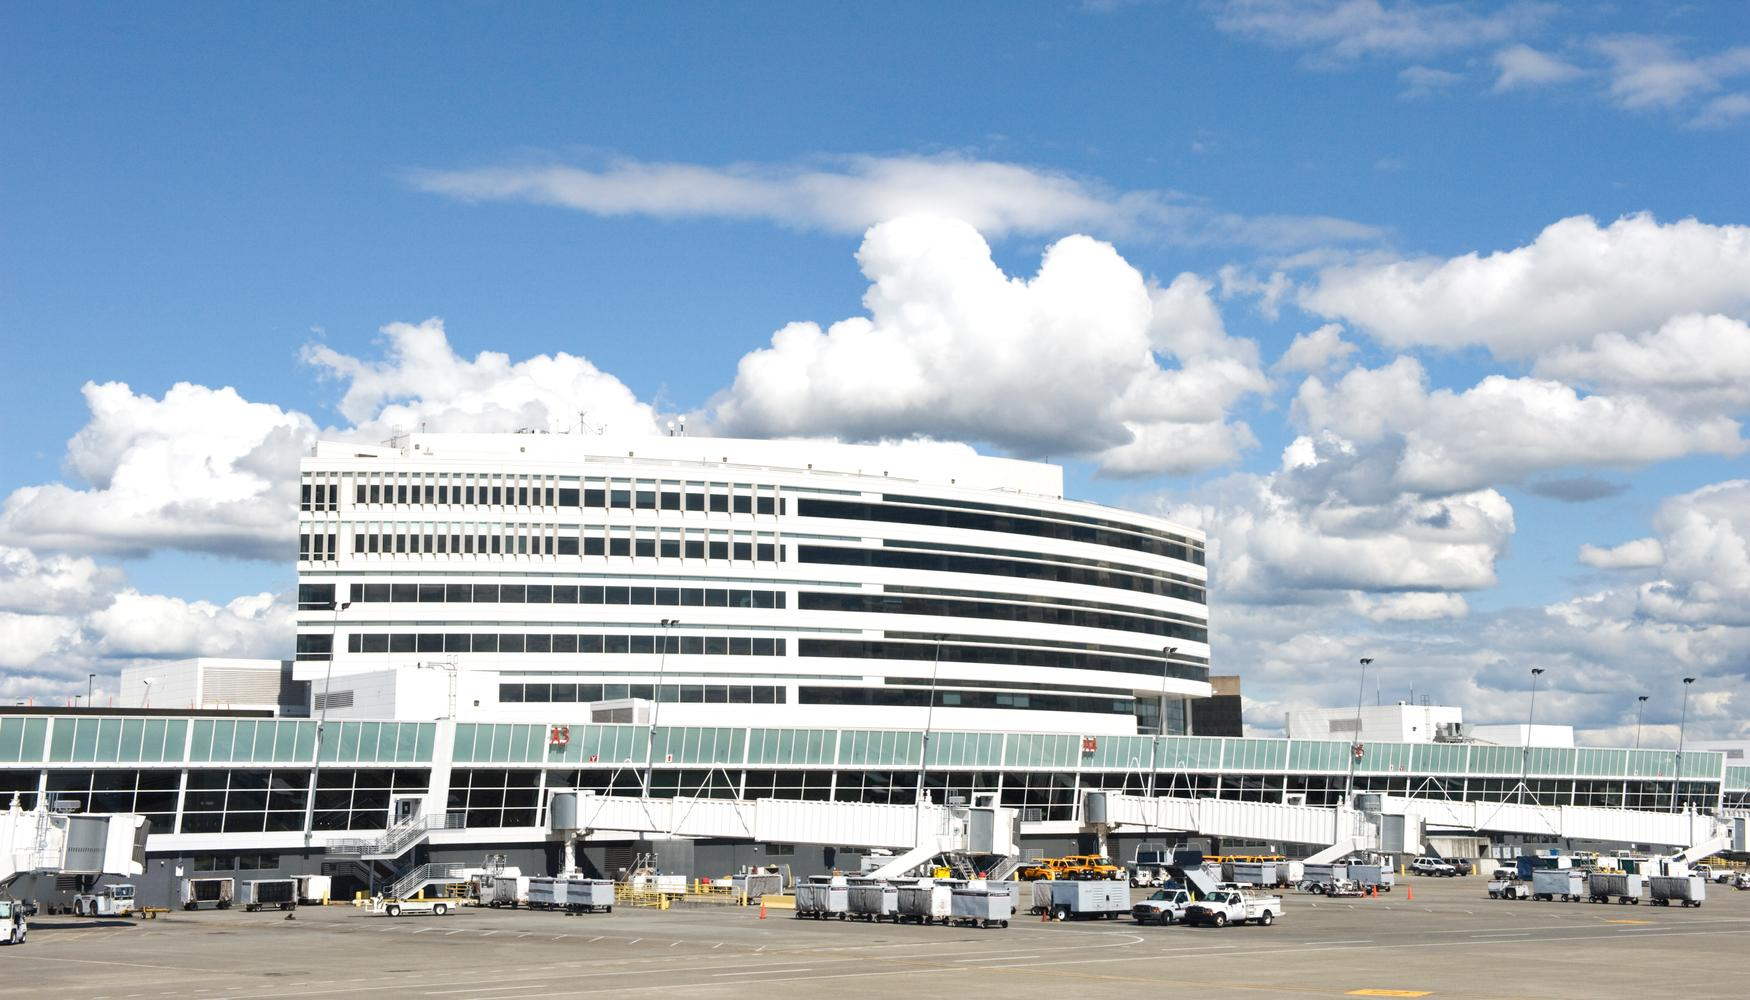 Car rental at Seattle/Tacoma Intl Airport